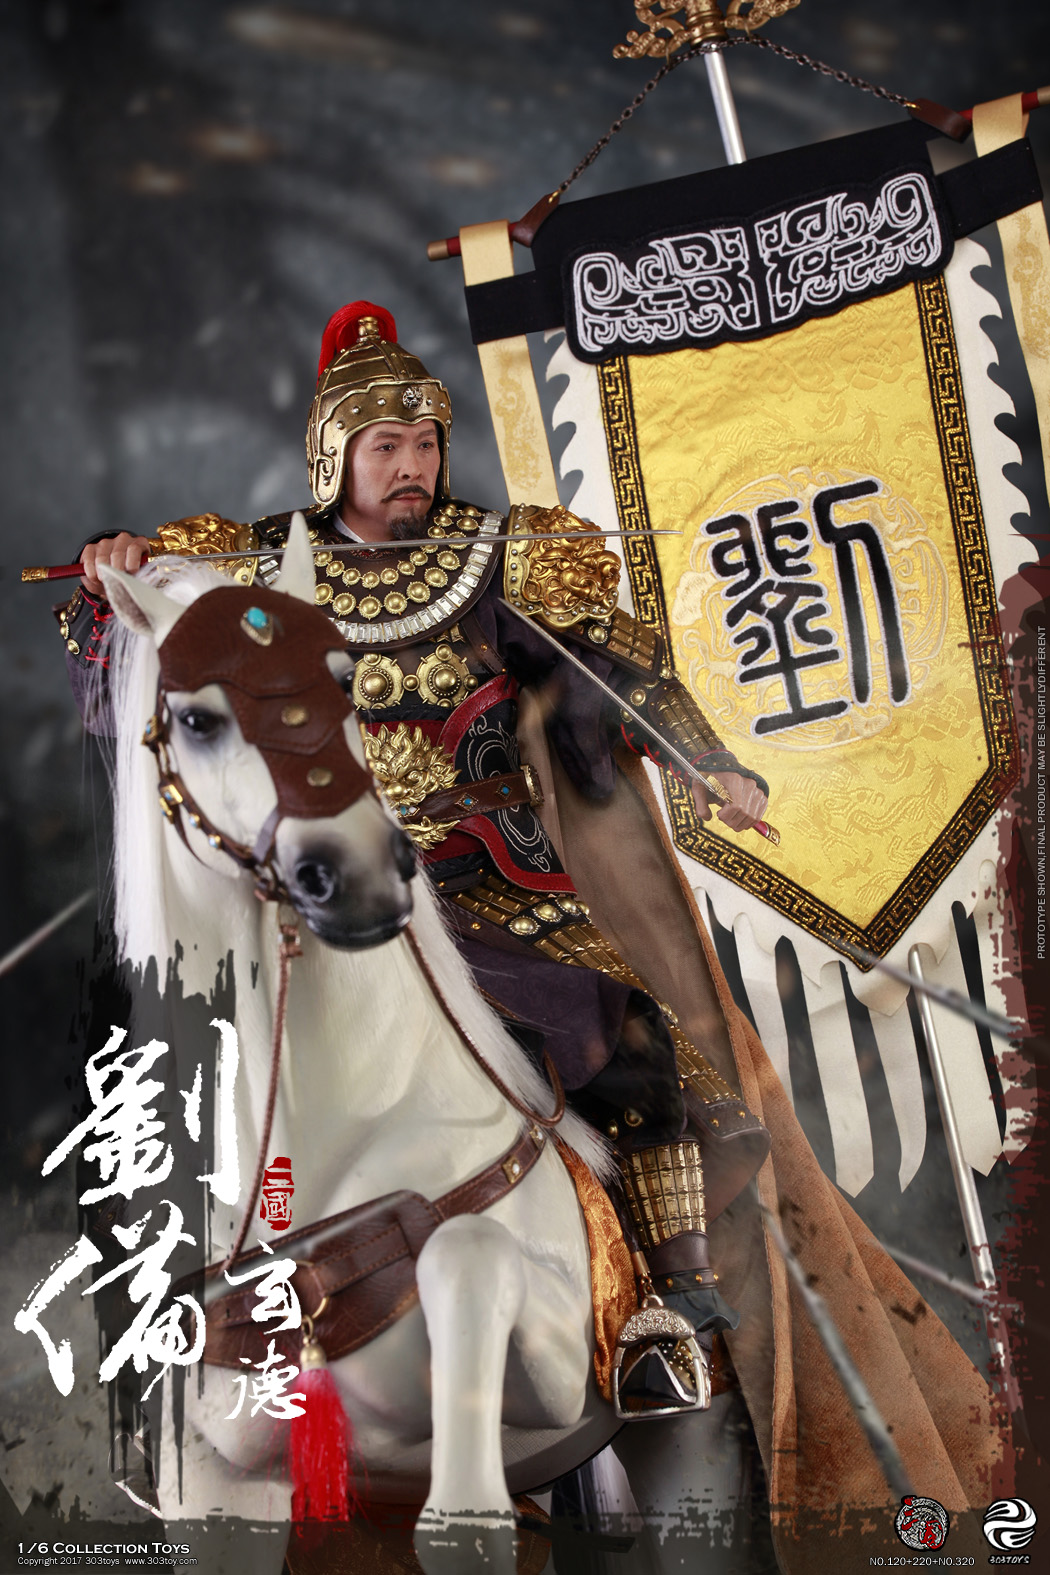 Toys & Hobbies Devoted 303toys No.320 1/6 Three Kingdoms Series Liu Bei A.k.a Xuande Armed Version Collection Action Figure